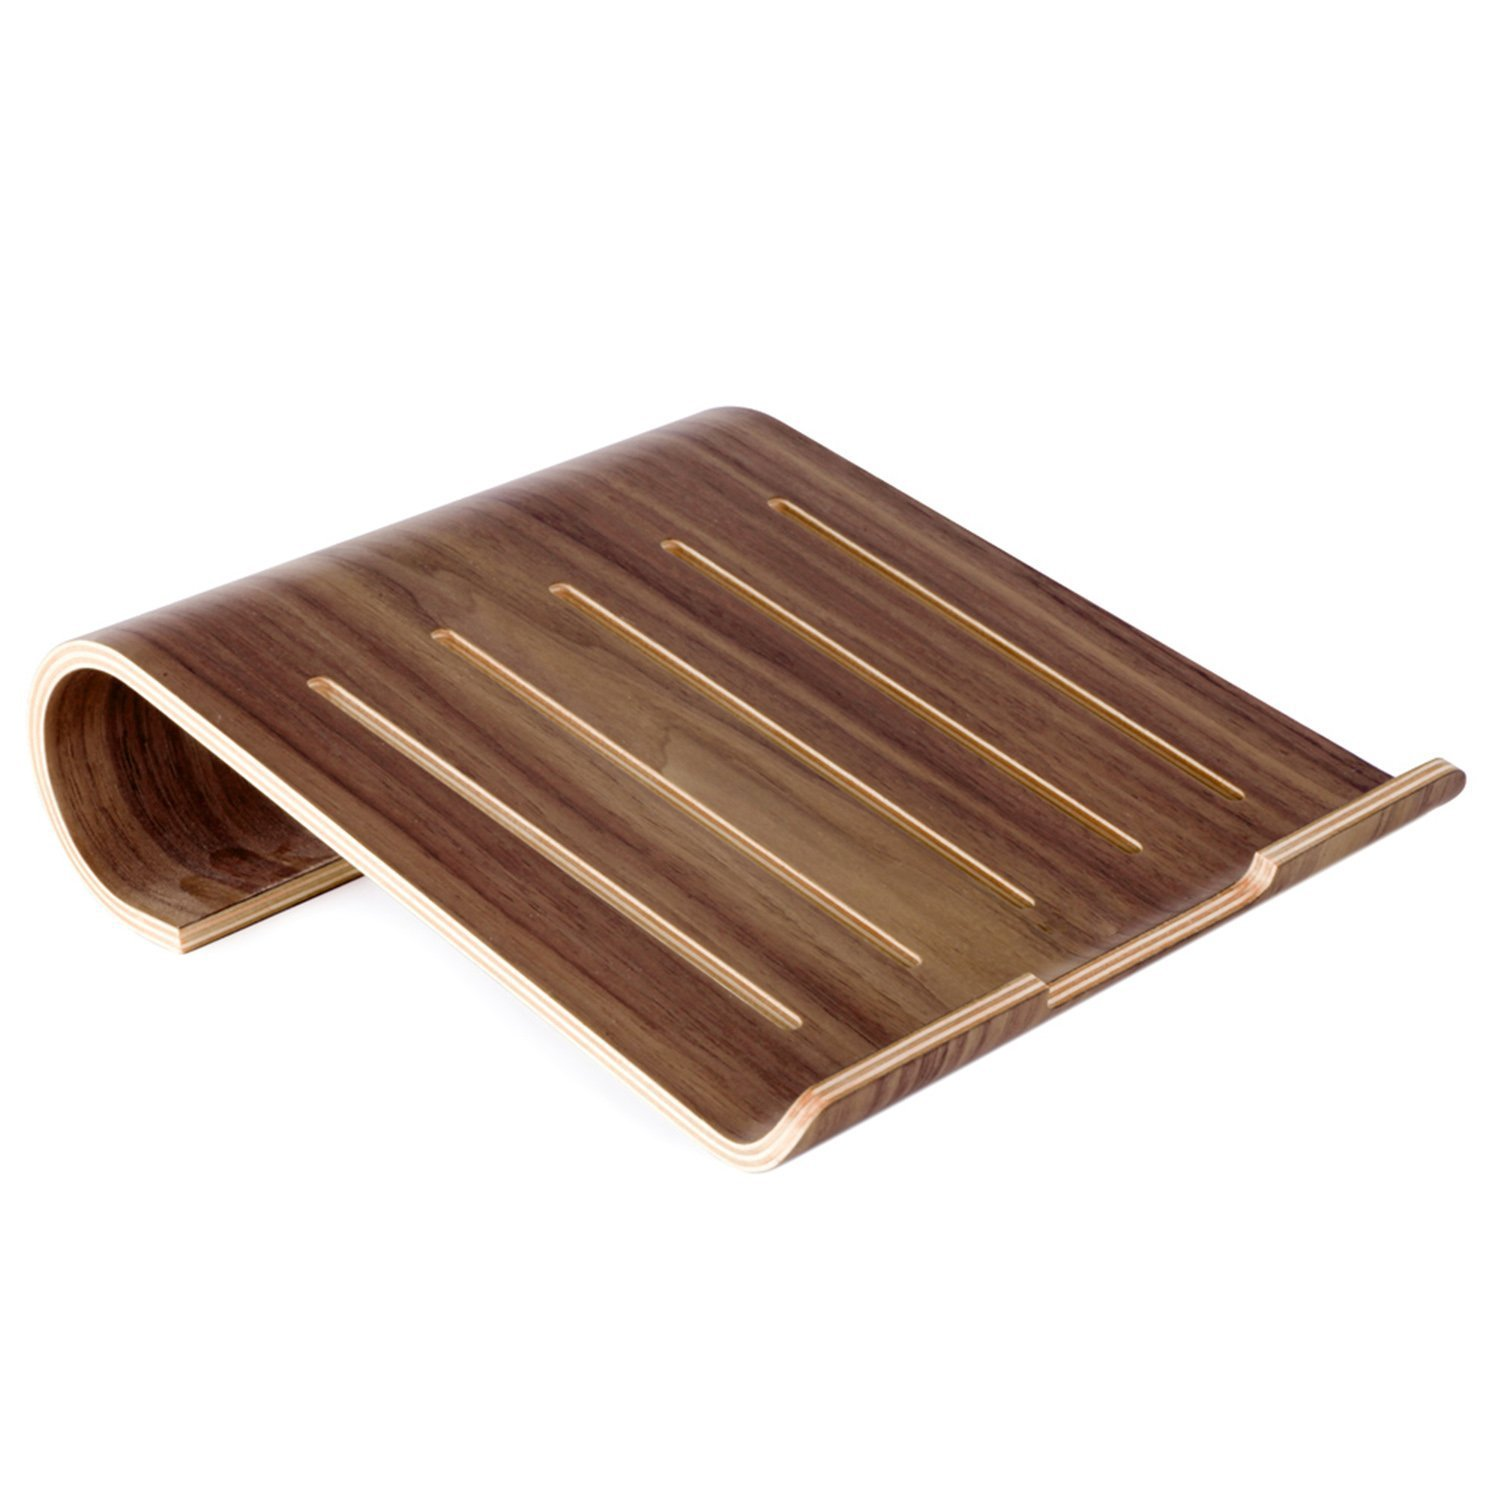 Wood Laptop Stand, VIMVIP® Wooden Laptop Stand Holder for Macbook Air Macbook Pro iPad Pro Surface Pro& Other Laptop Notebook (Natural)